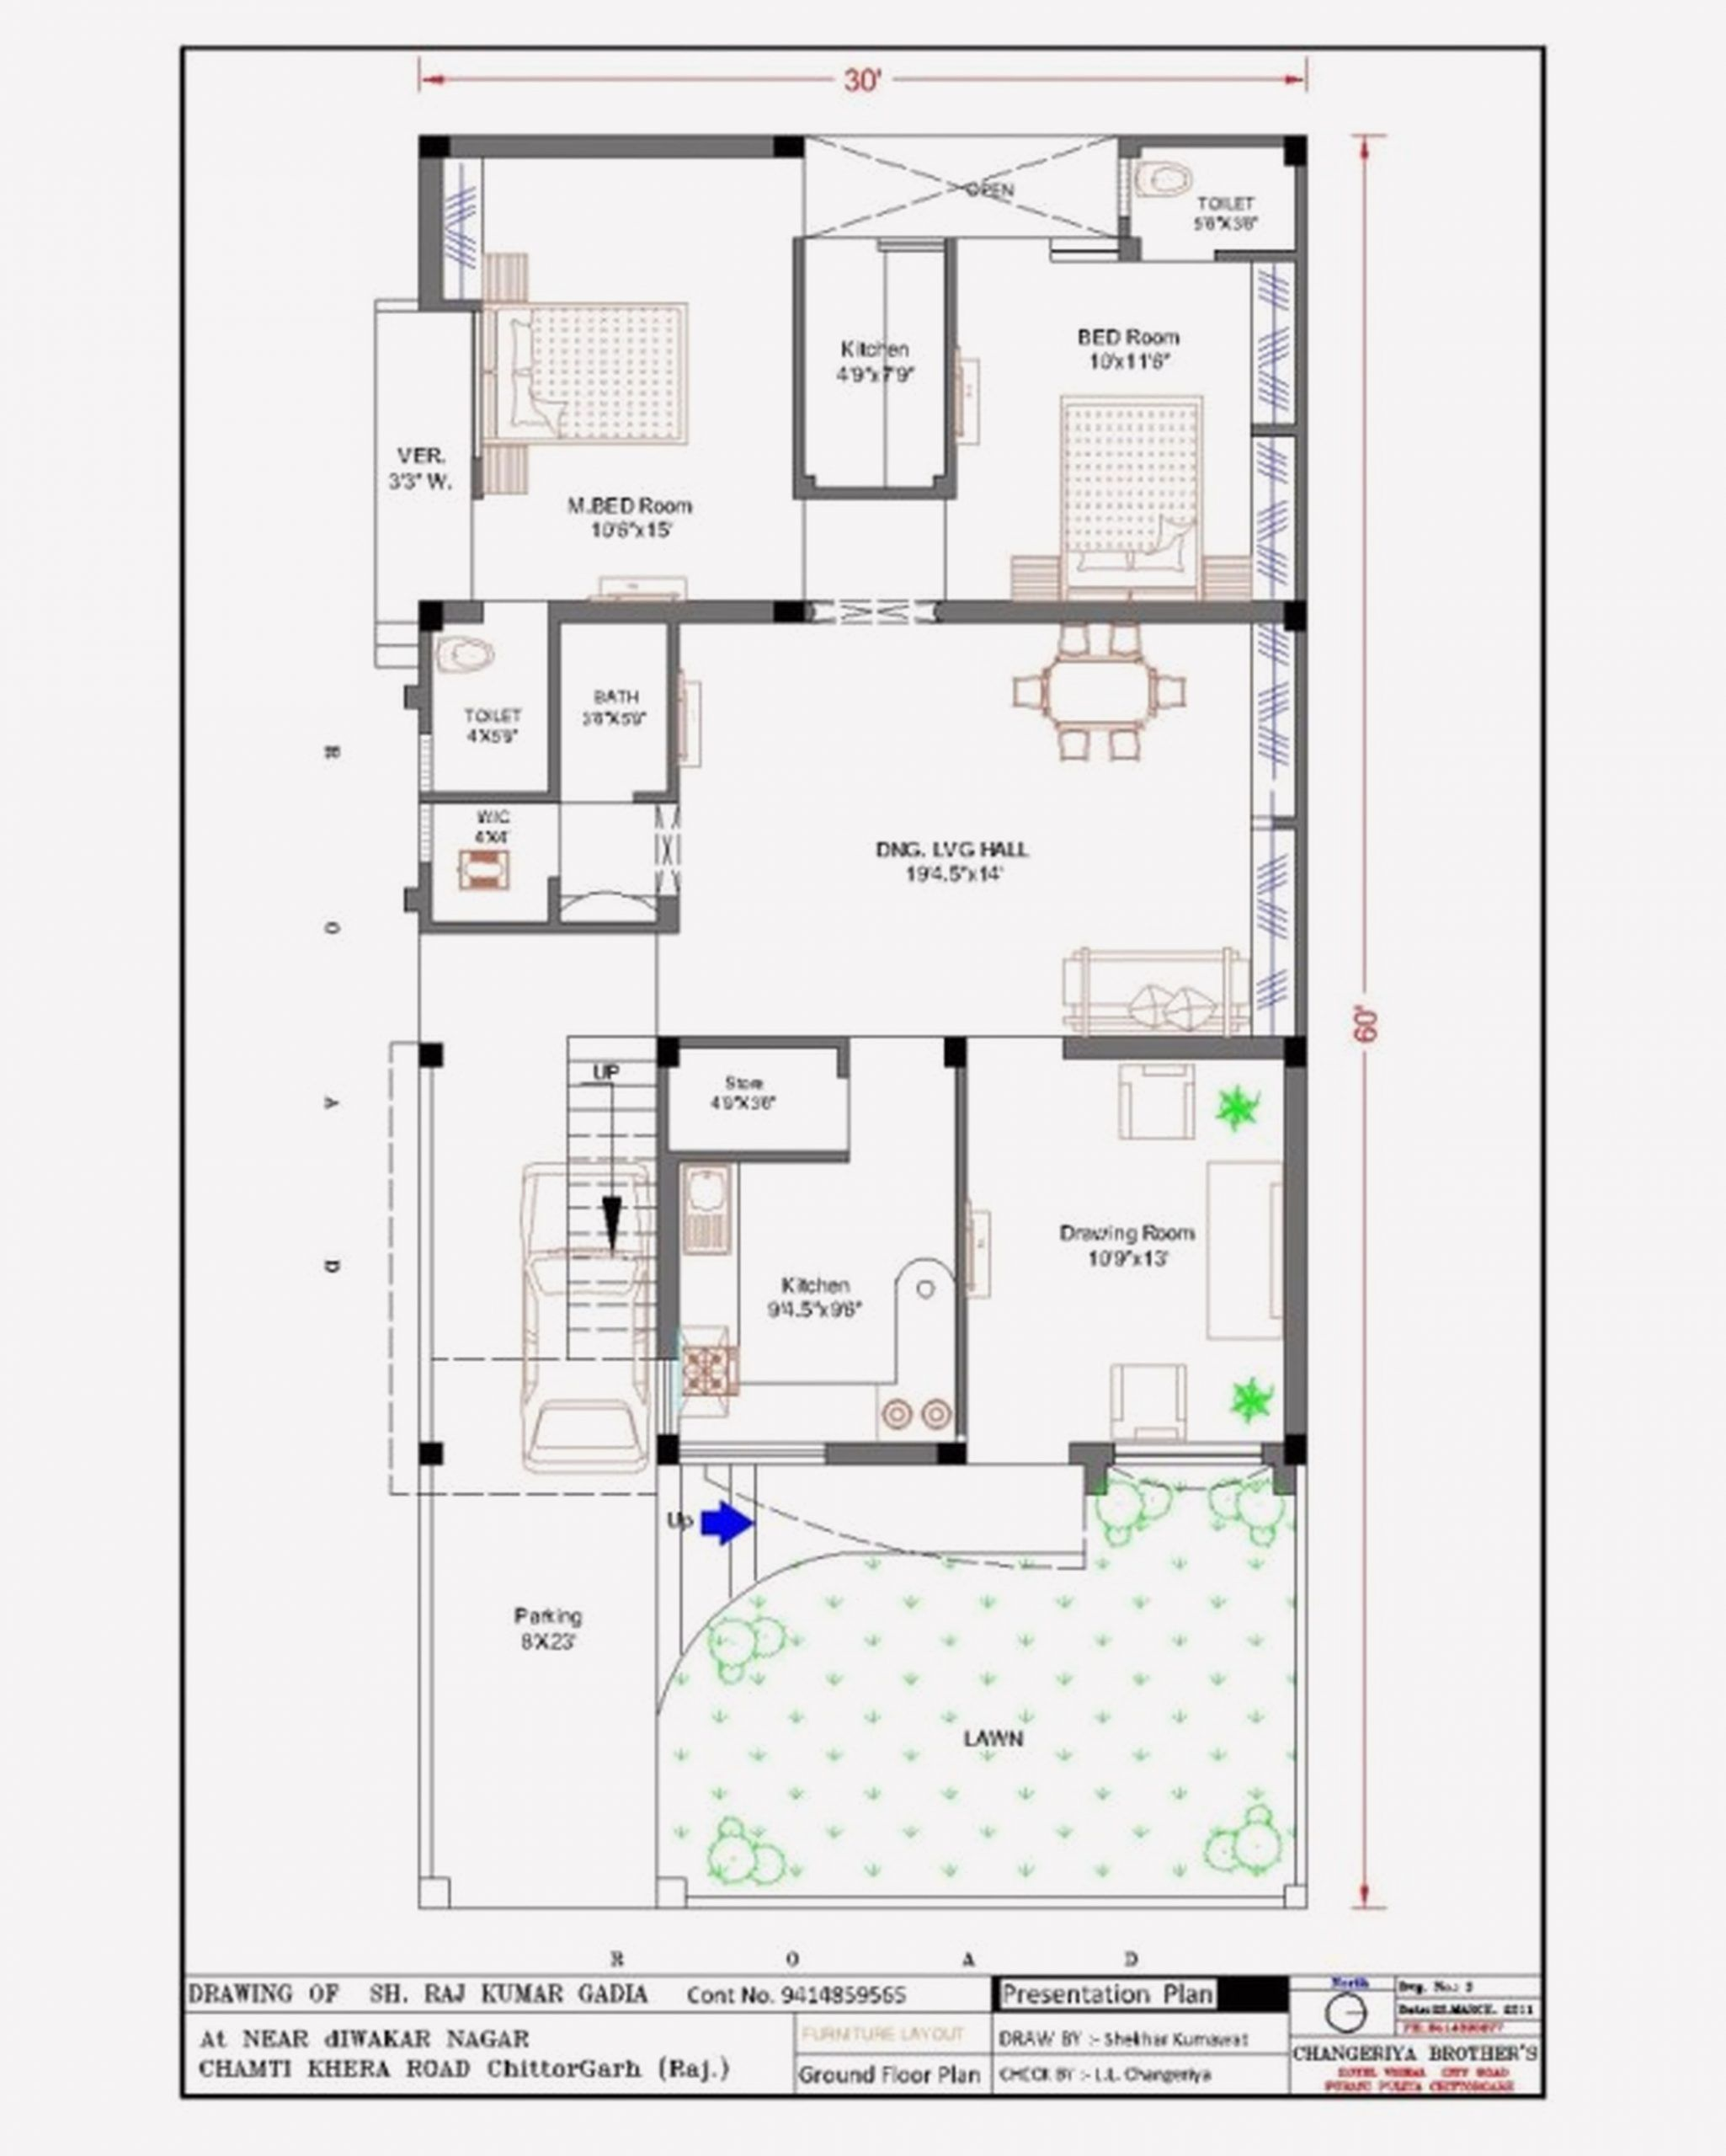 14 House Design And Floor Plan For Small Spaces In Philippines Free House Plan Software Drawing House Plans Modern House Floor Plans